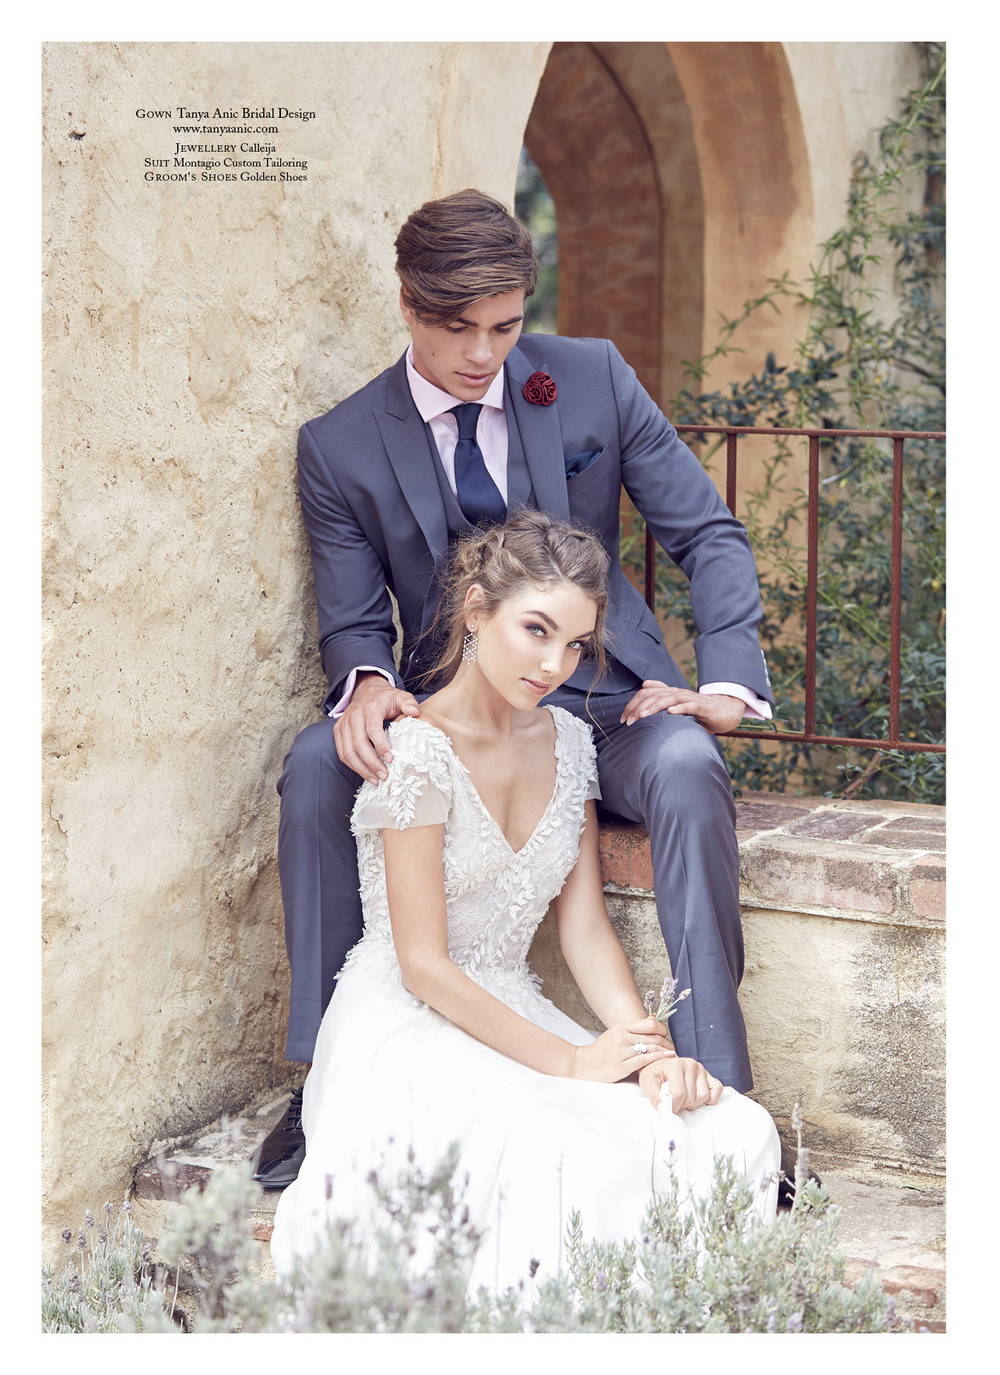 Willow bridal gown by Tanya Anic   as seen in   Luxury Weddings   magazine